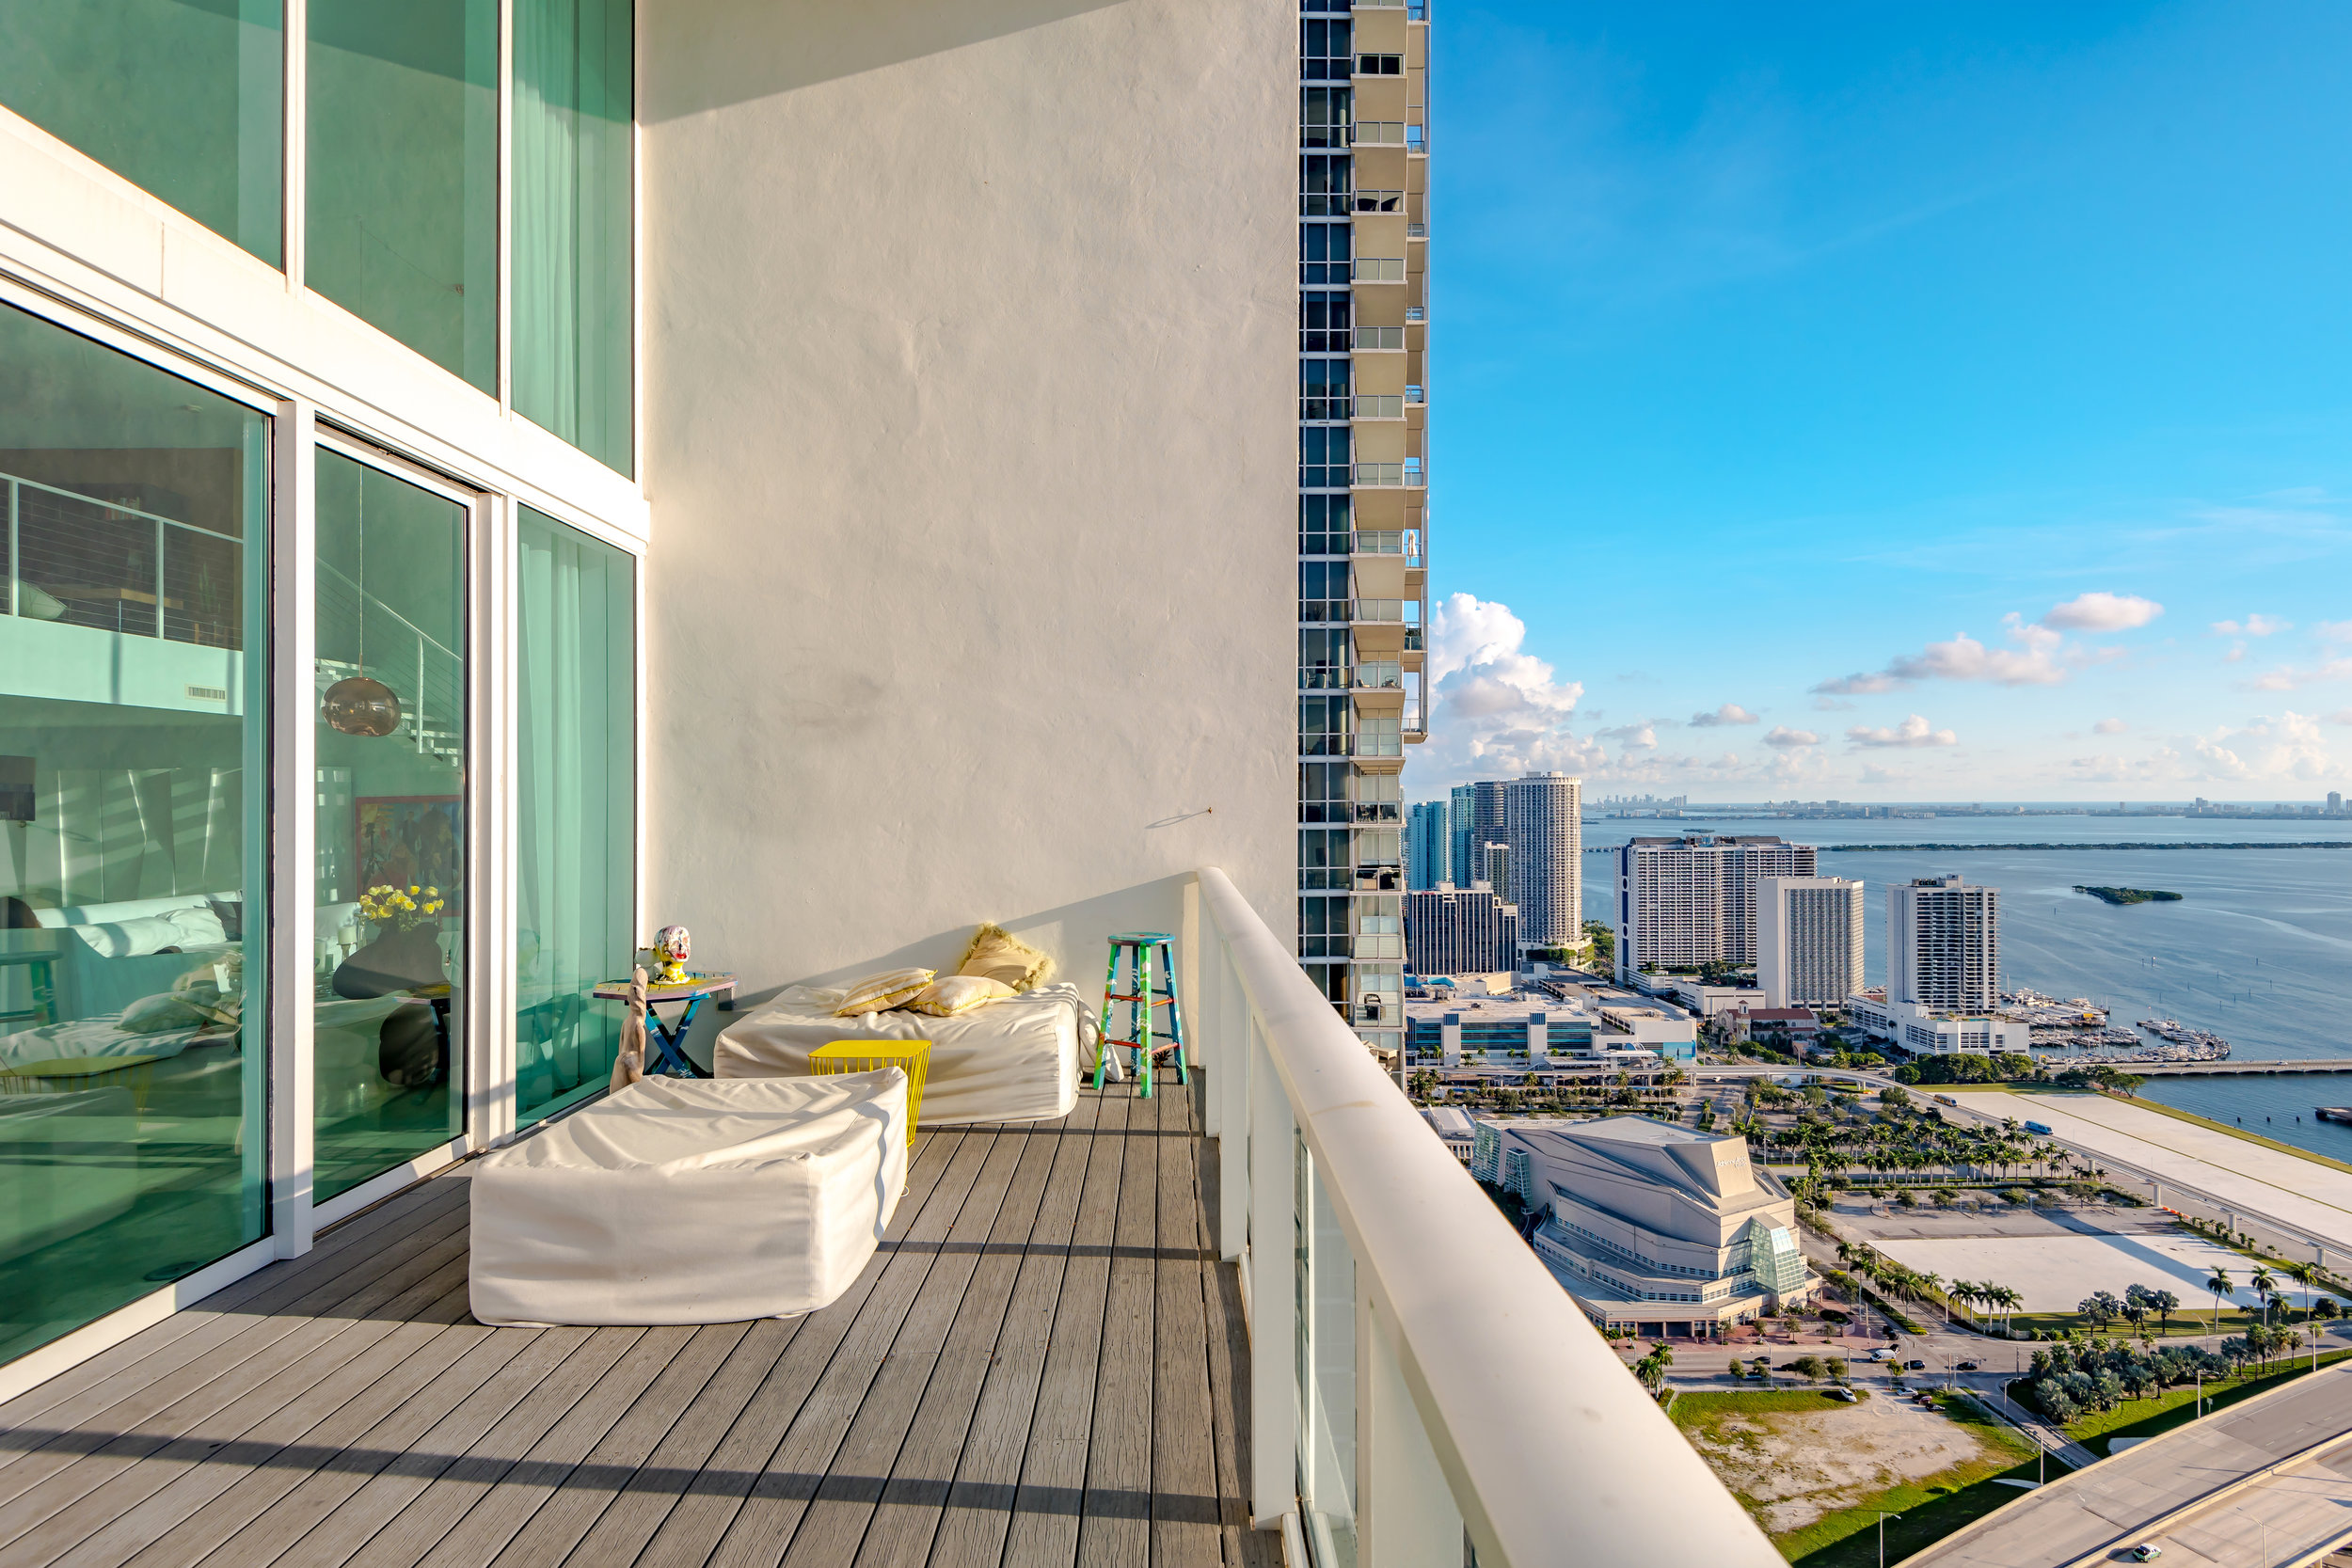 Check Out This Stunning Tri-Level Penthouse At Ten Museum Park Complete With A Rooftop Pool